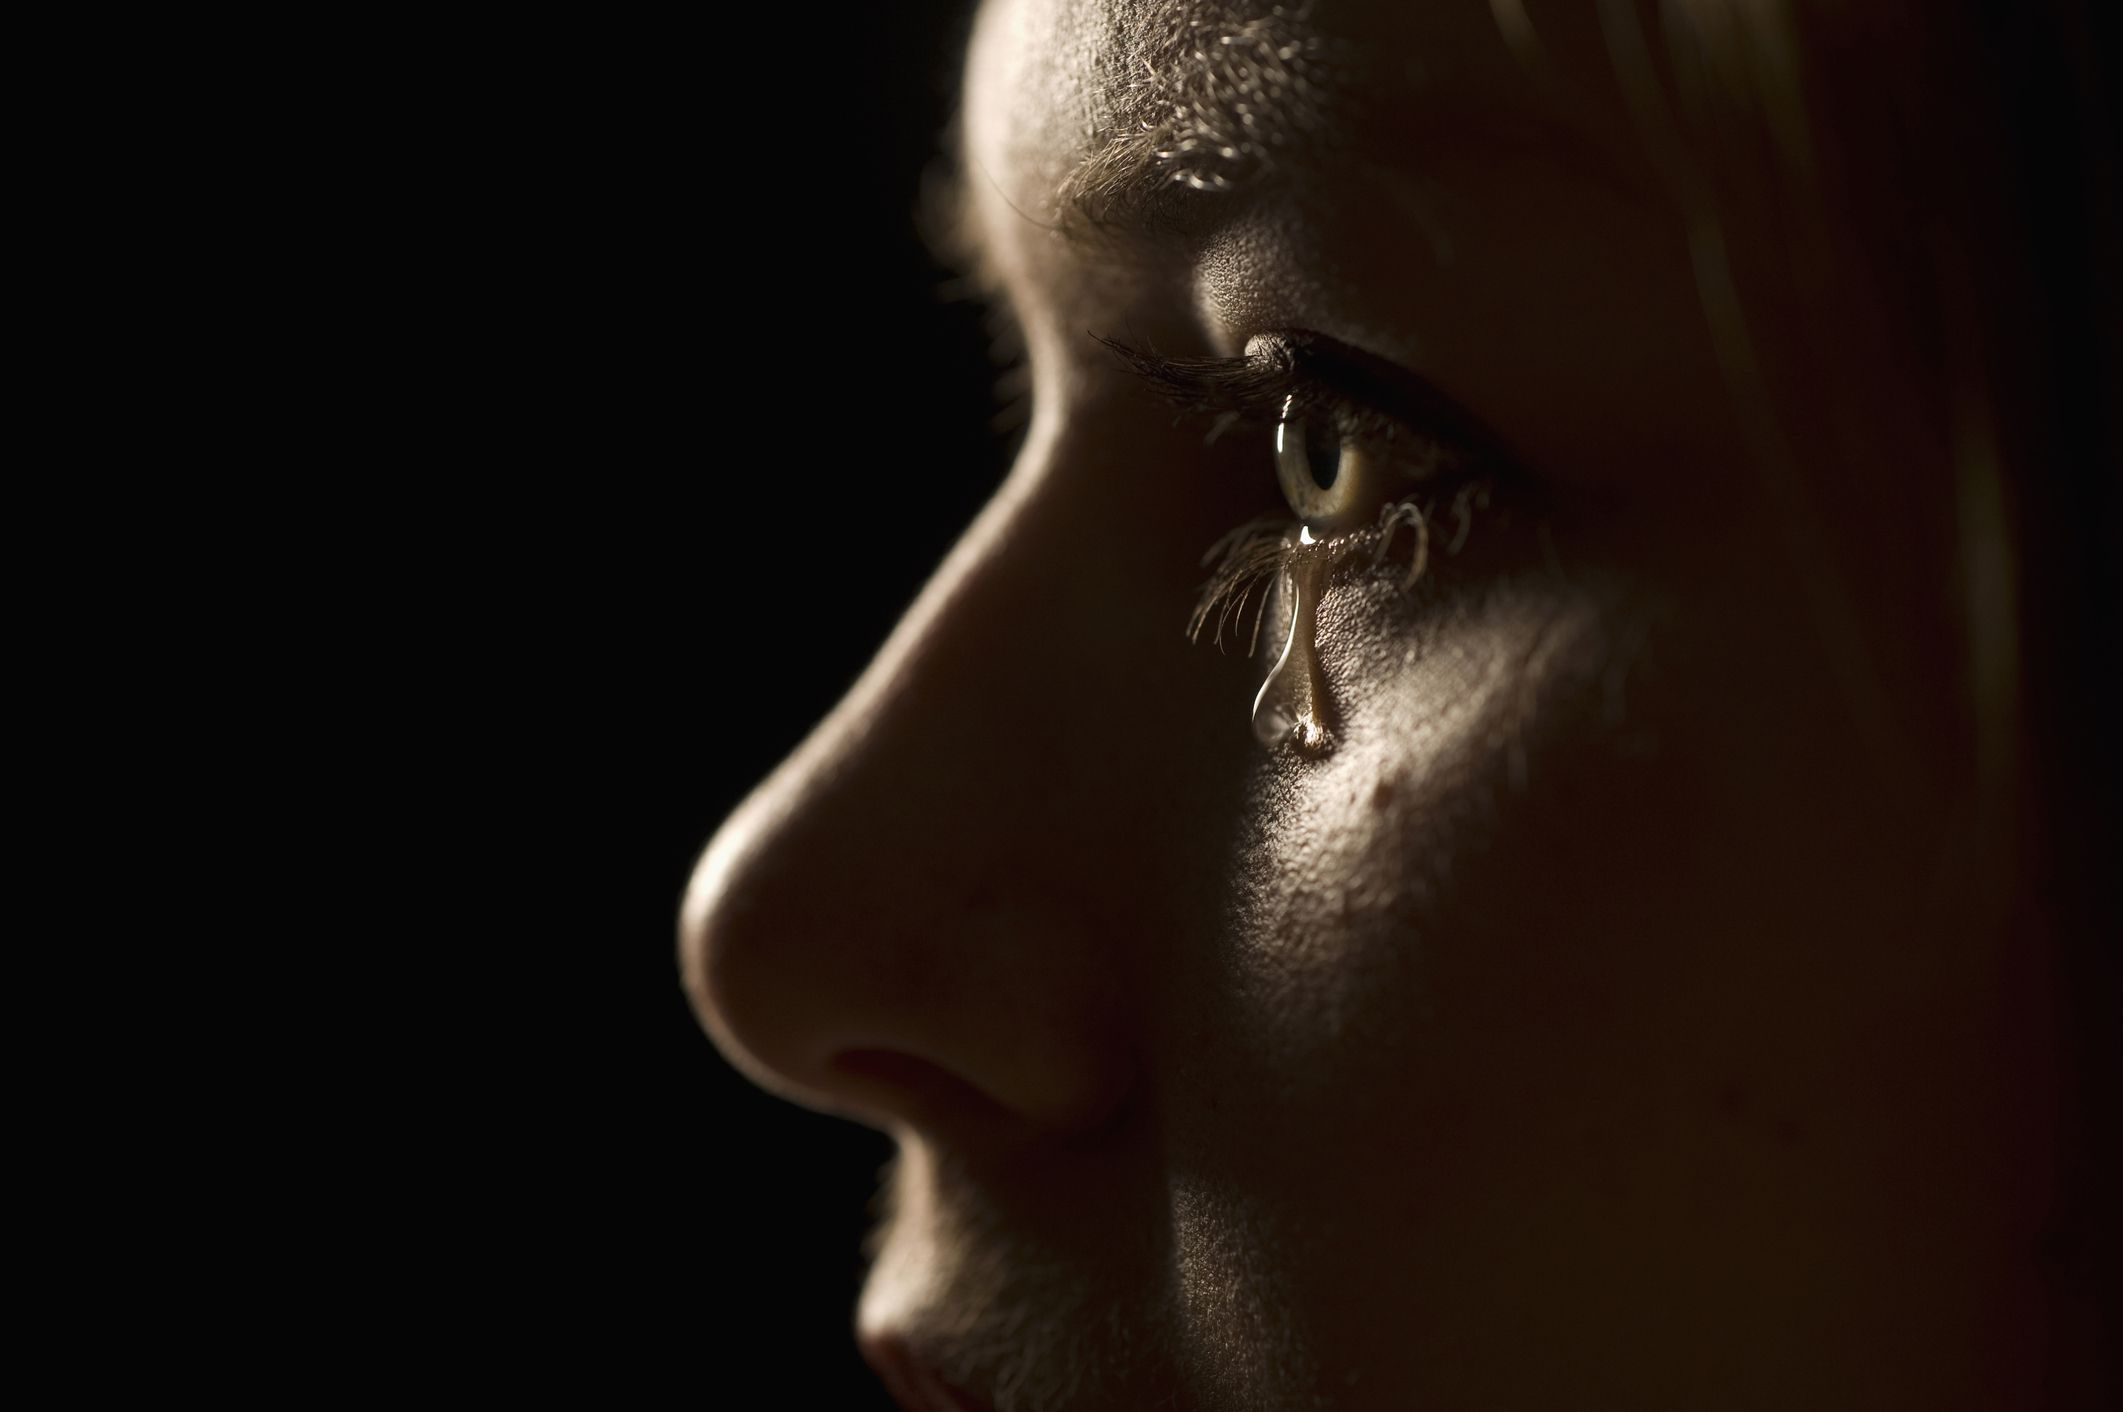 Young woman in profile crying close up